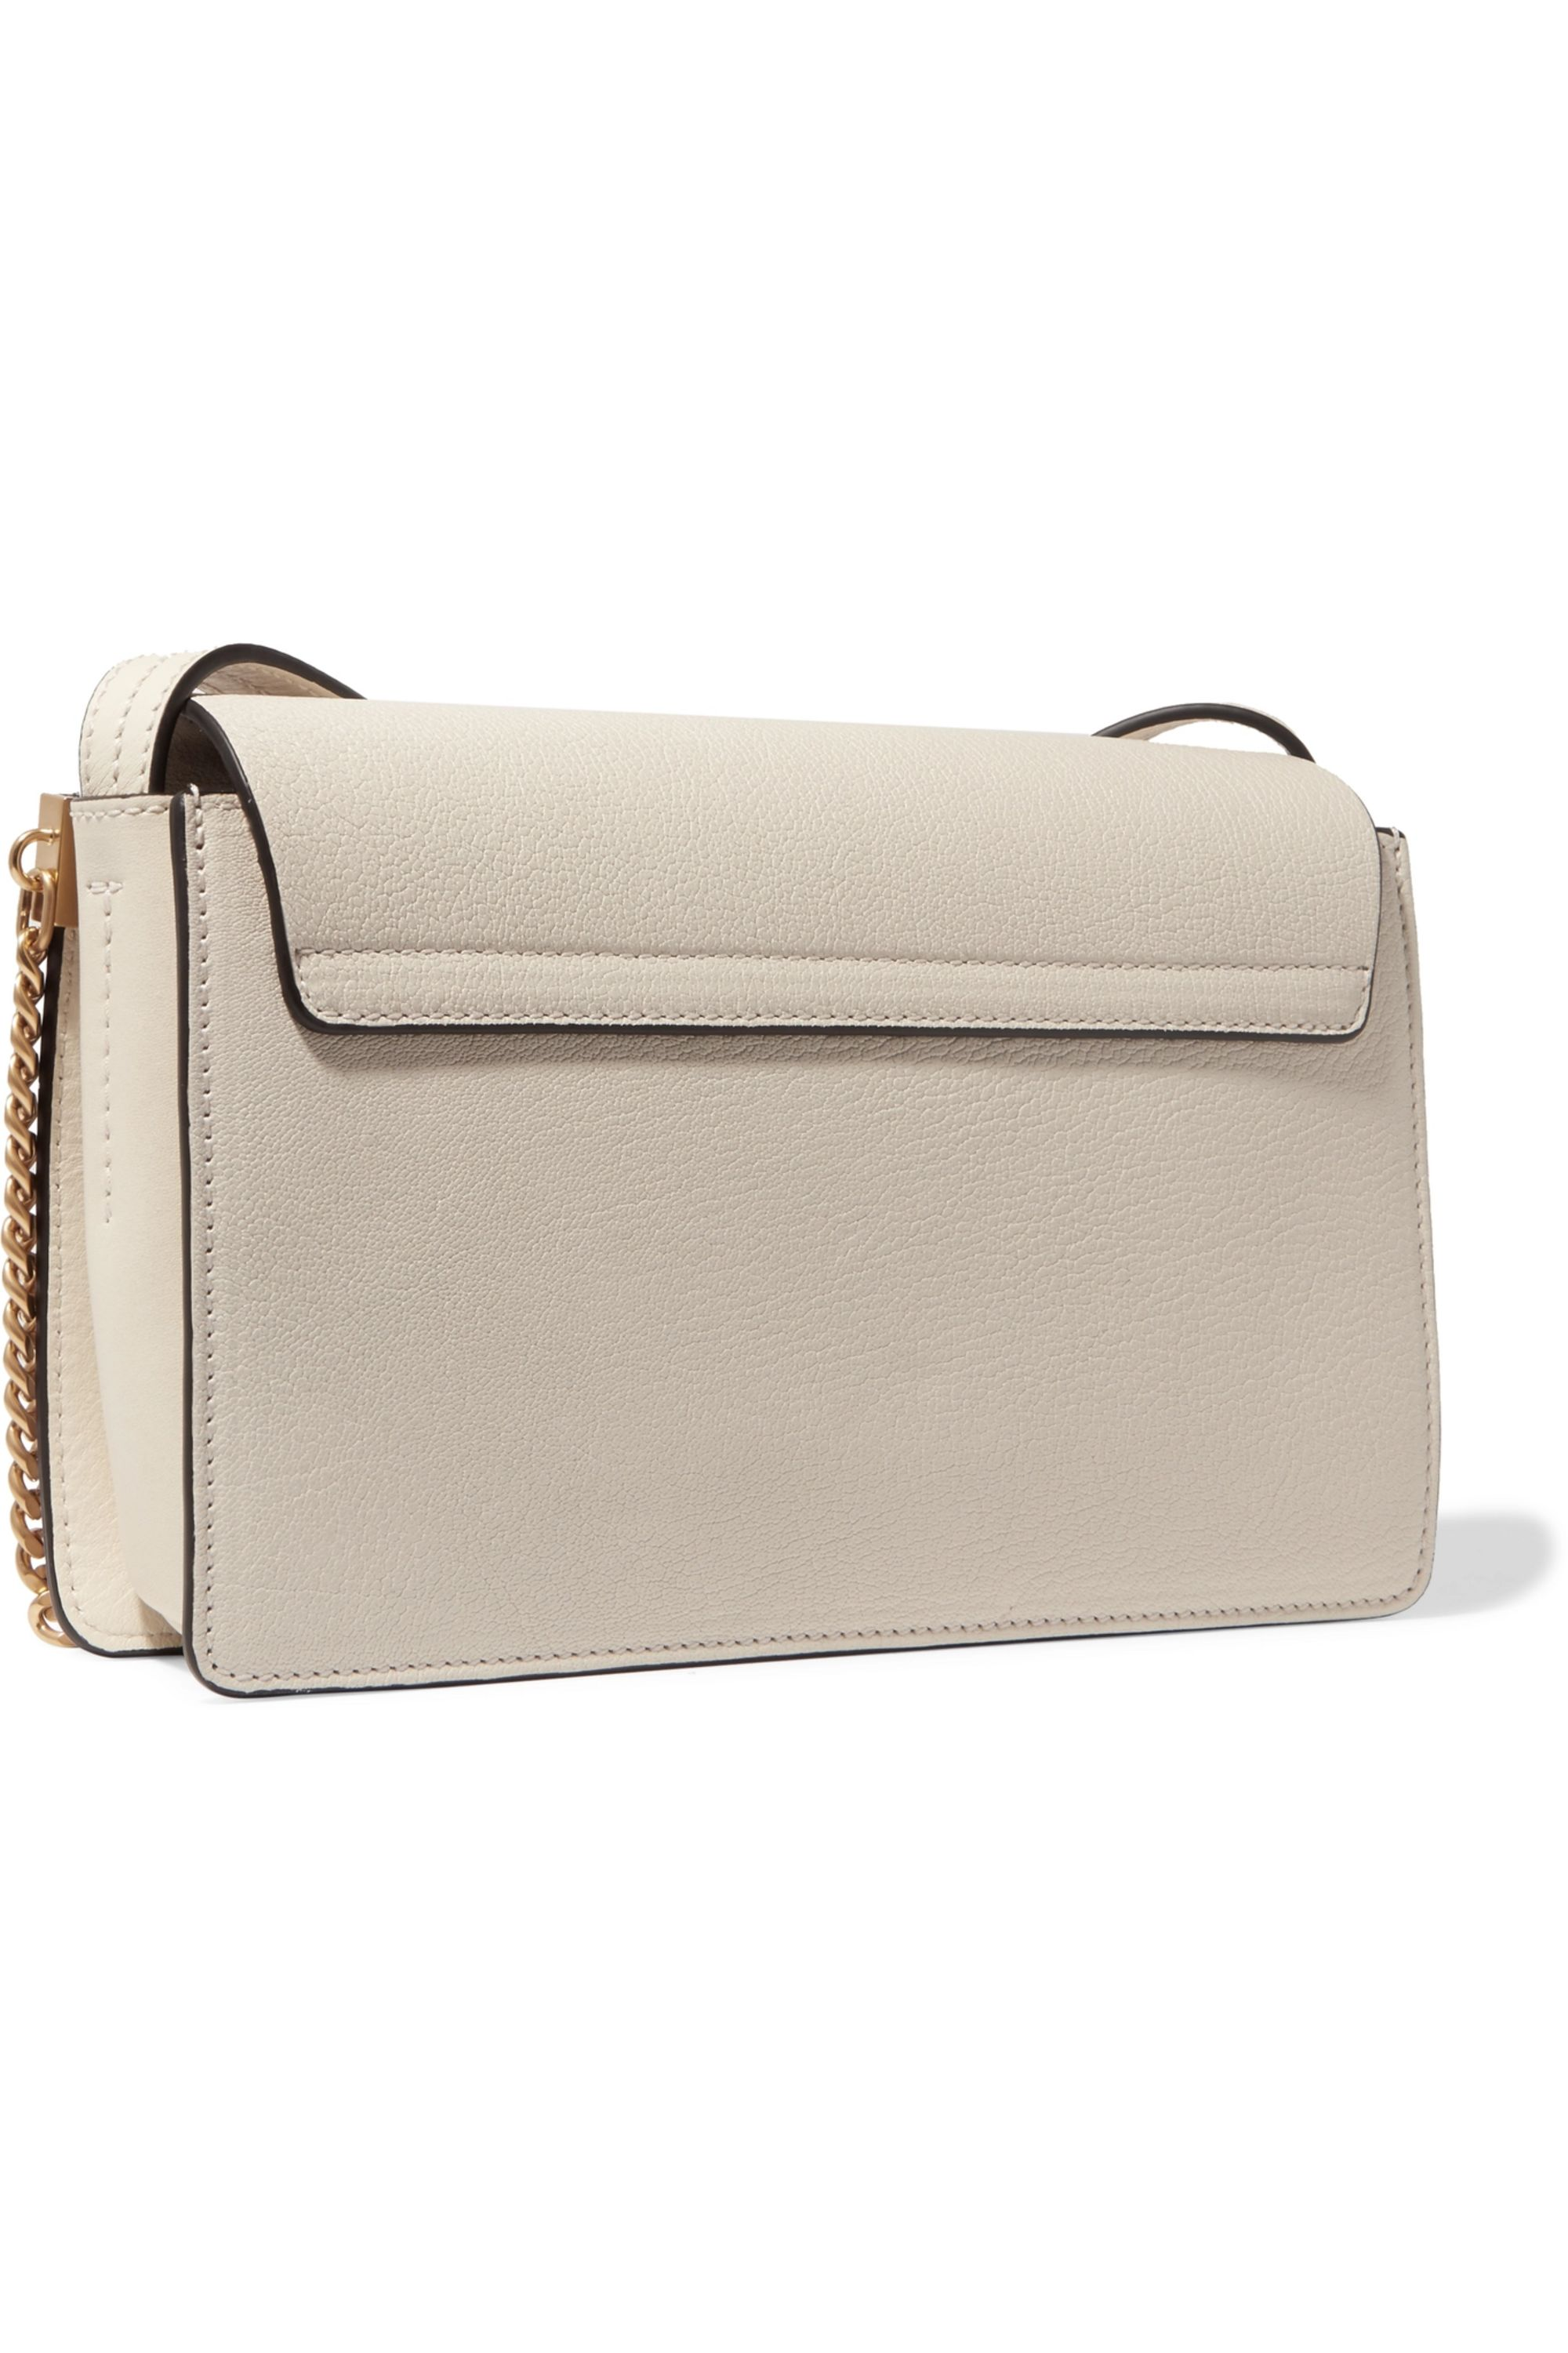 Chloé Faye small textured-leather shoulder bag